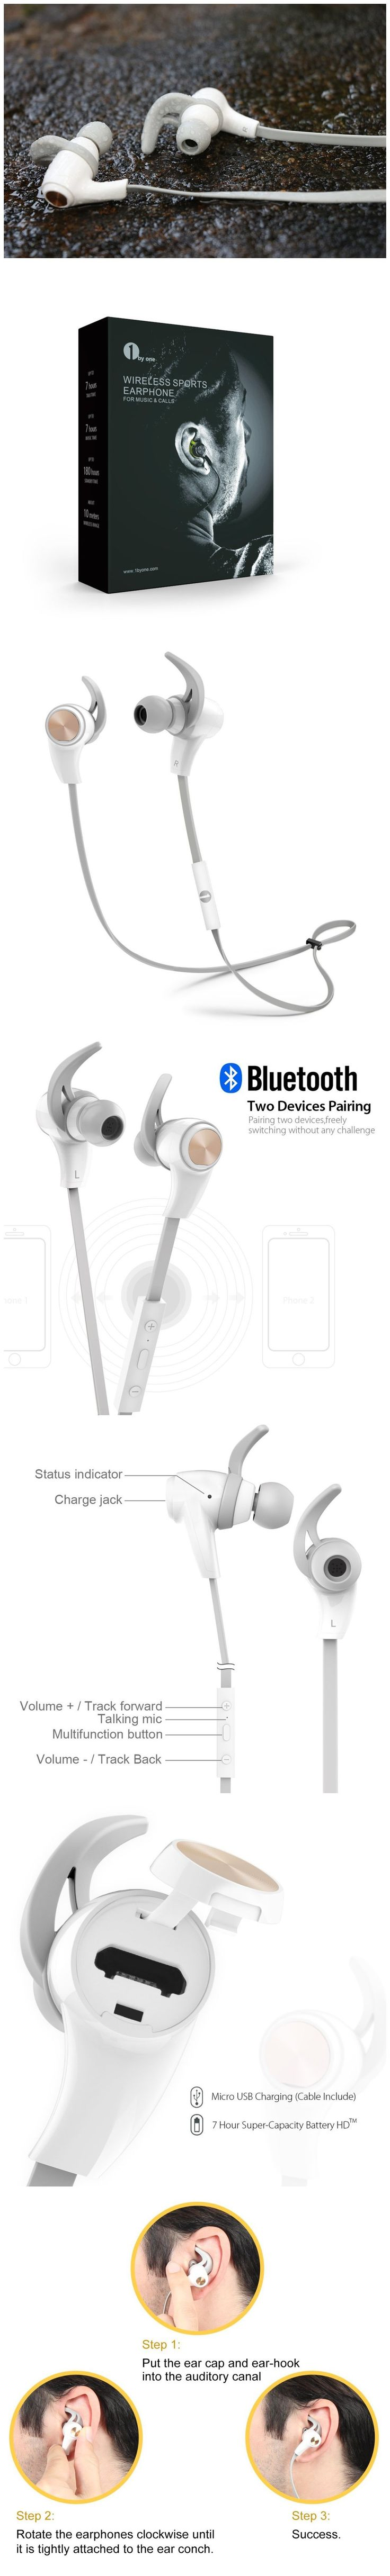 Only $26.96,1byone Bluetooth 4.1 Wireless In-Ear Headphones, Sports Earphones with HD Stereo Sound & Modern, Sweat-Proof and Ergonomic Design, White & Grey